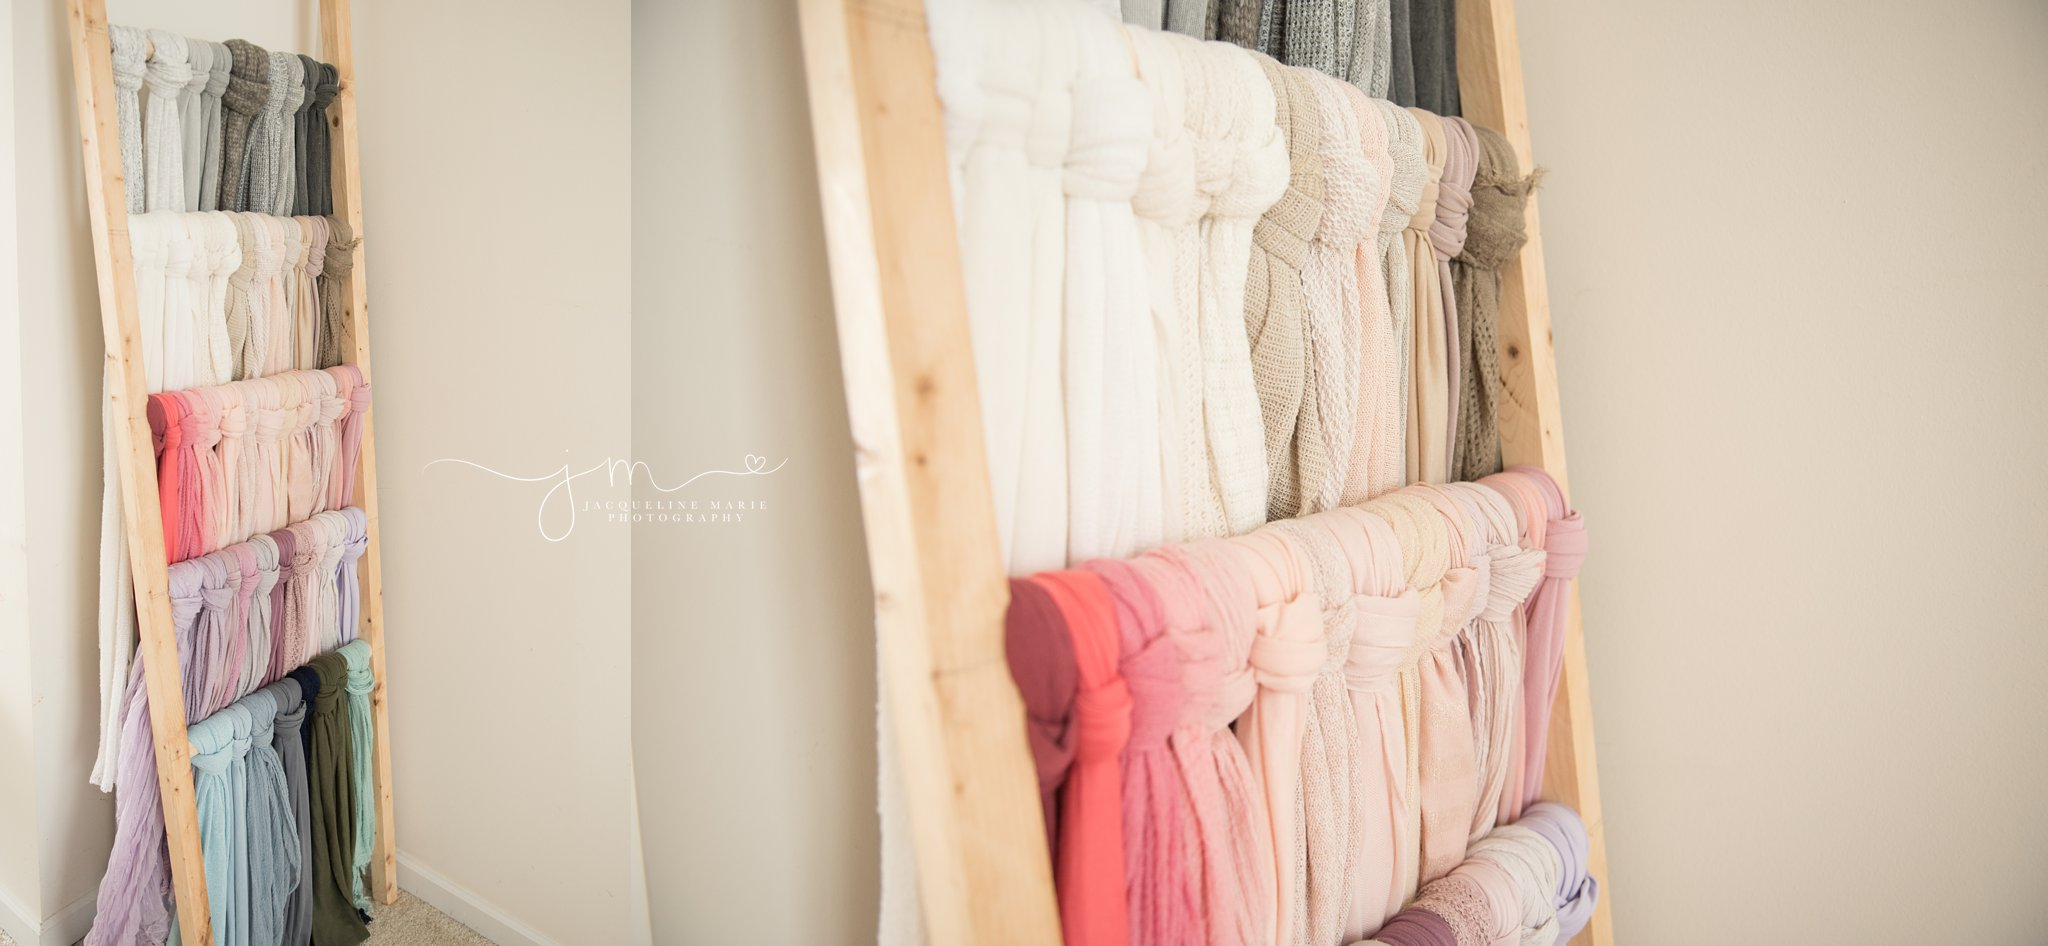 wood ladder displays wraps and layers in many colors at newborn photography studio in columbus ohio